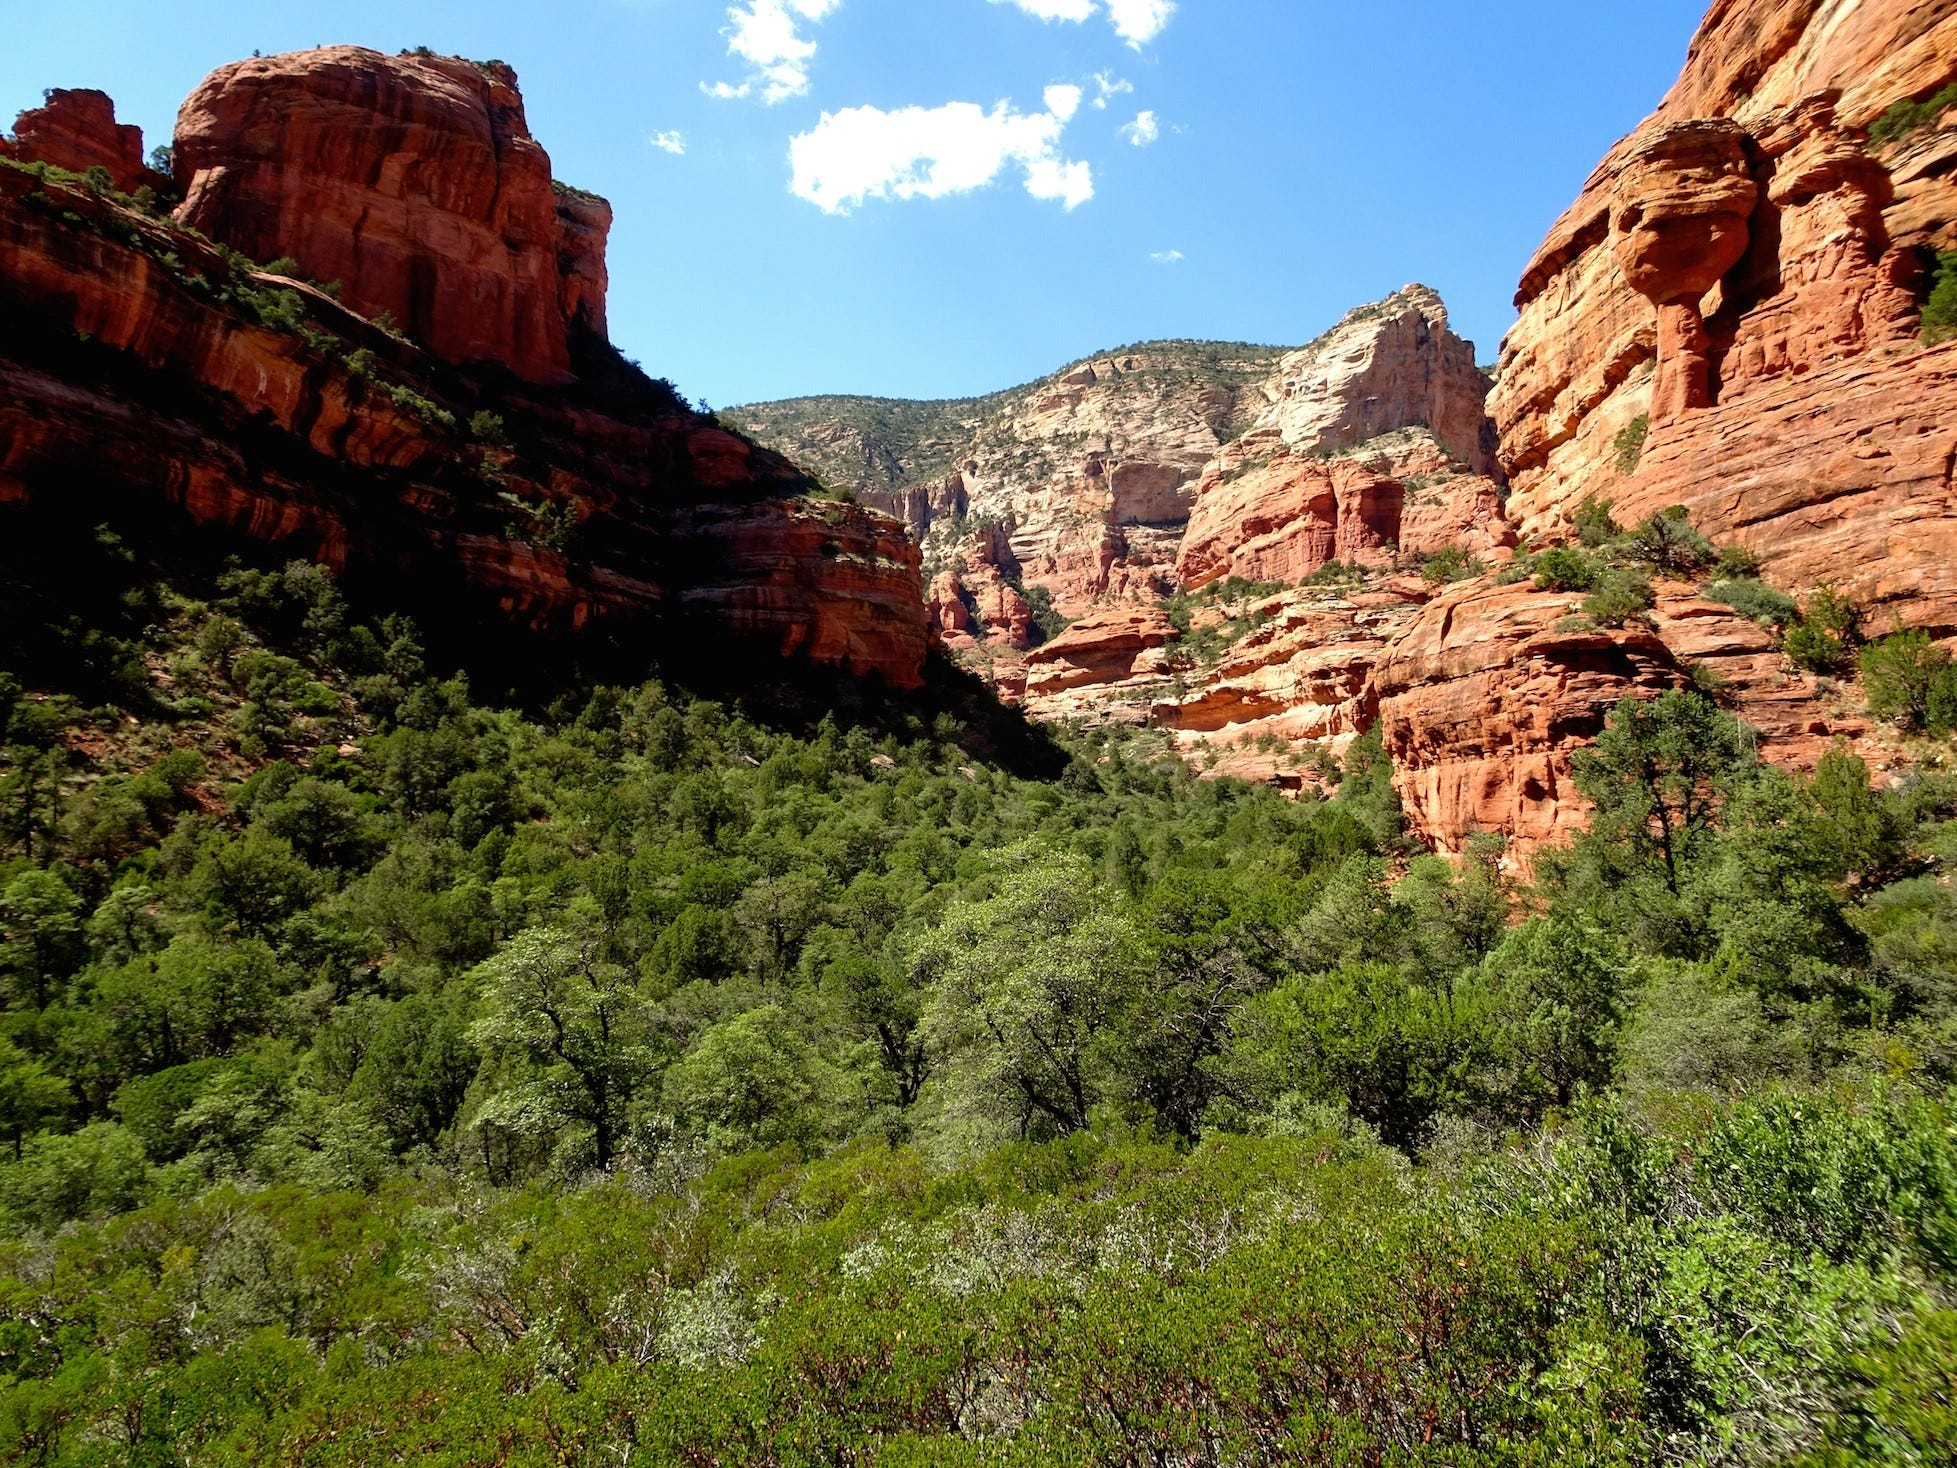 The Fay Canyon Trail is one of Sedona's easiest hikes. It meanders through shady woods into a box canyon.